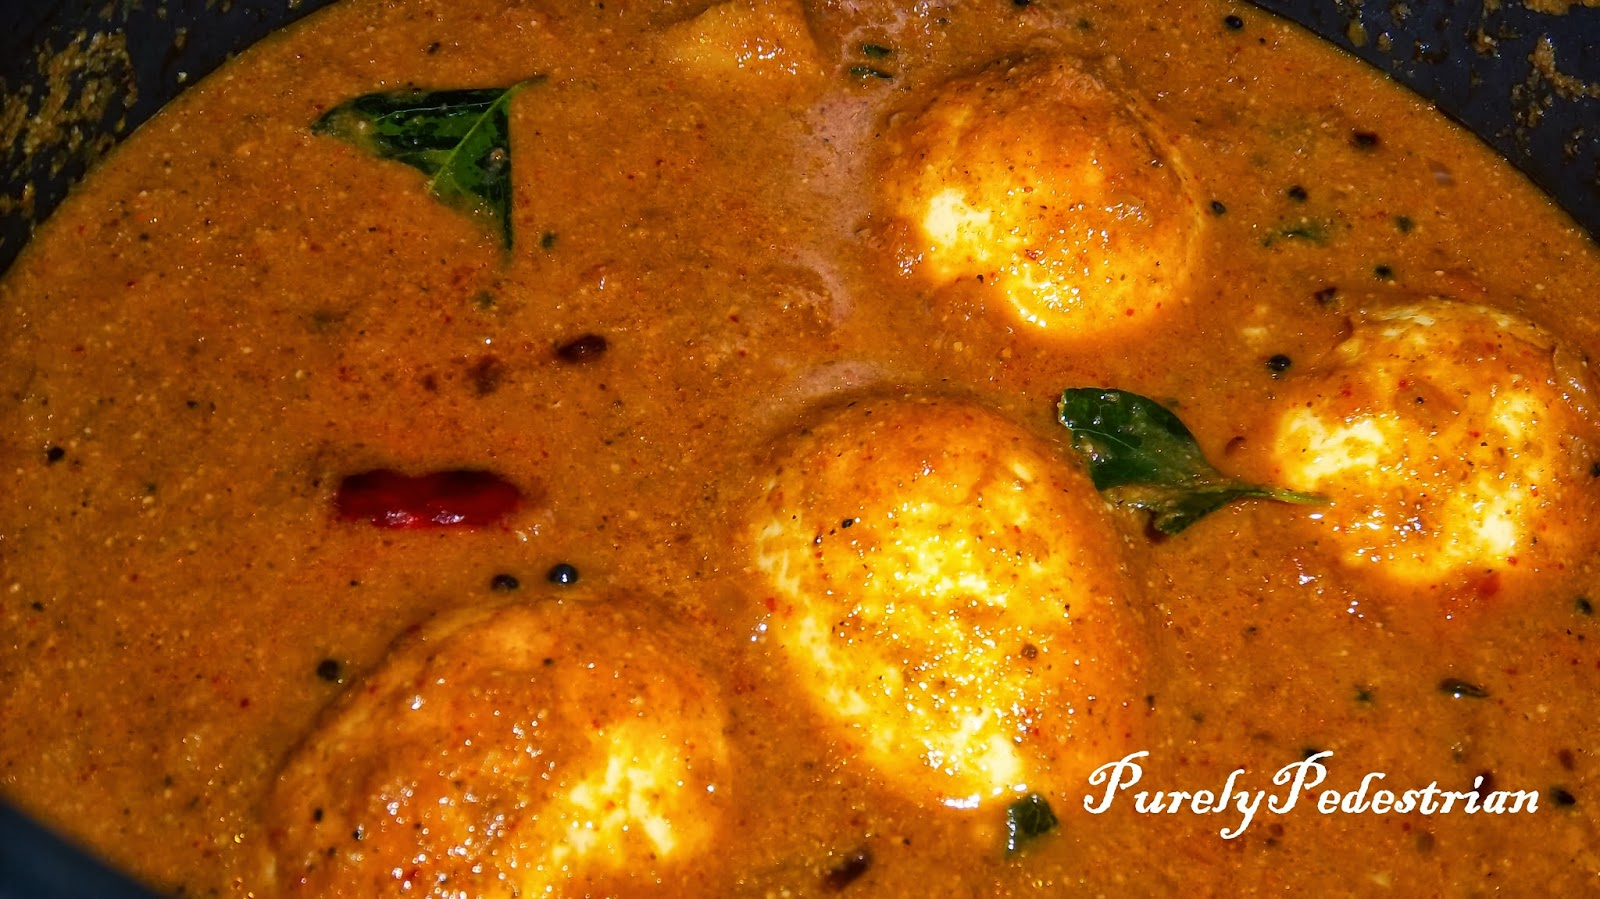 Purely Pedestrian: Naadan Varatharacha Motta Curry / Kerala Egg Curry